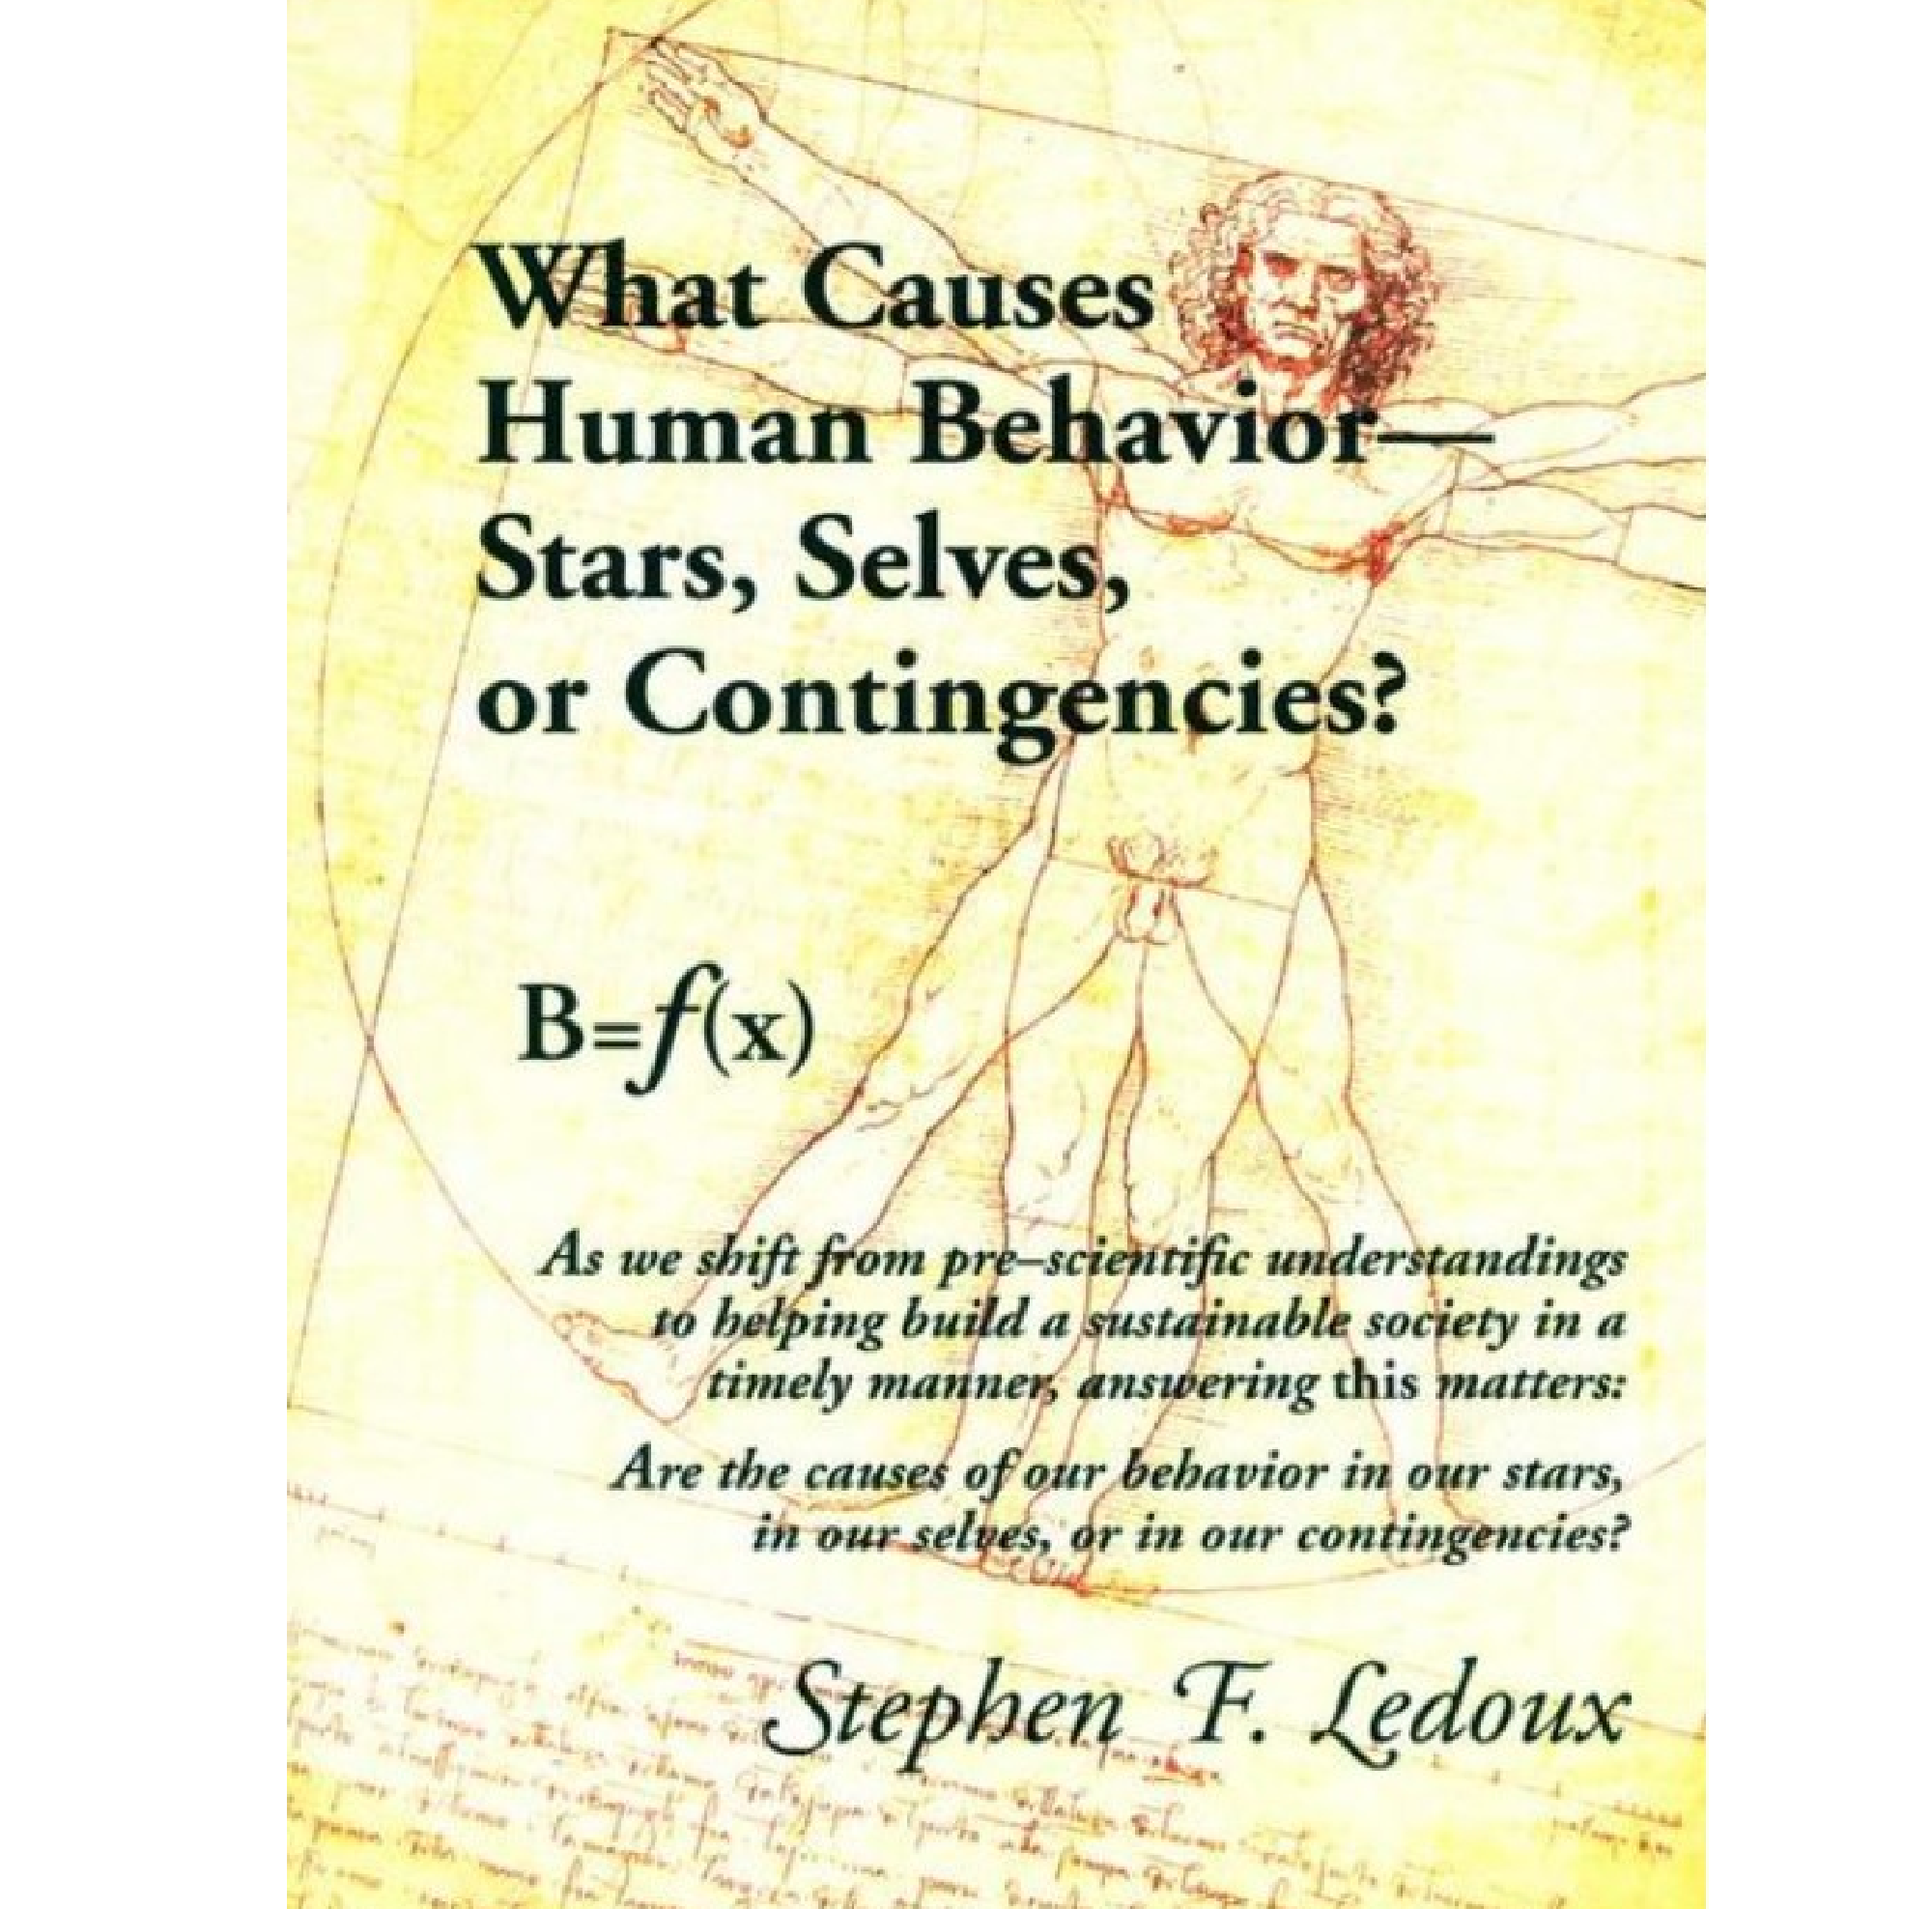 What Causes Human Behavior - Stars, Selves, Or Contingencies?